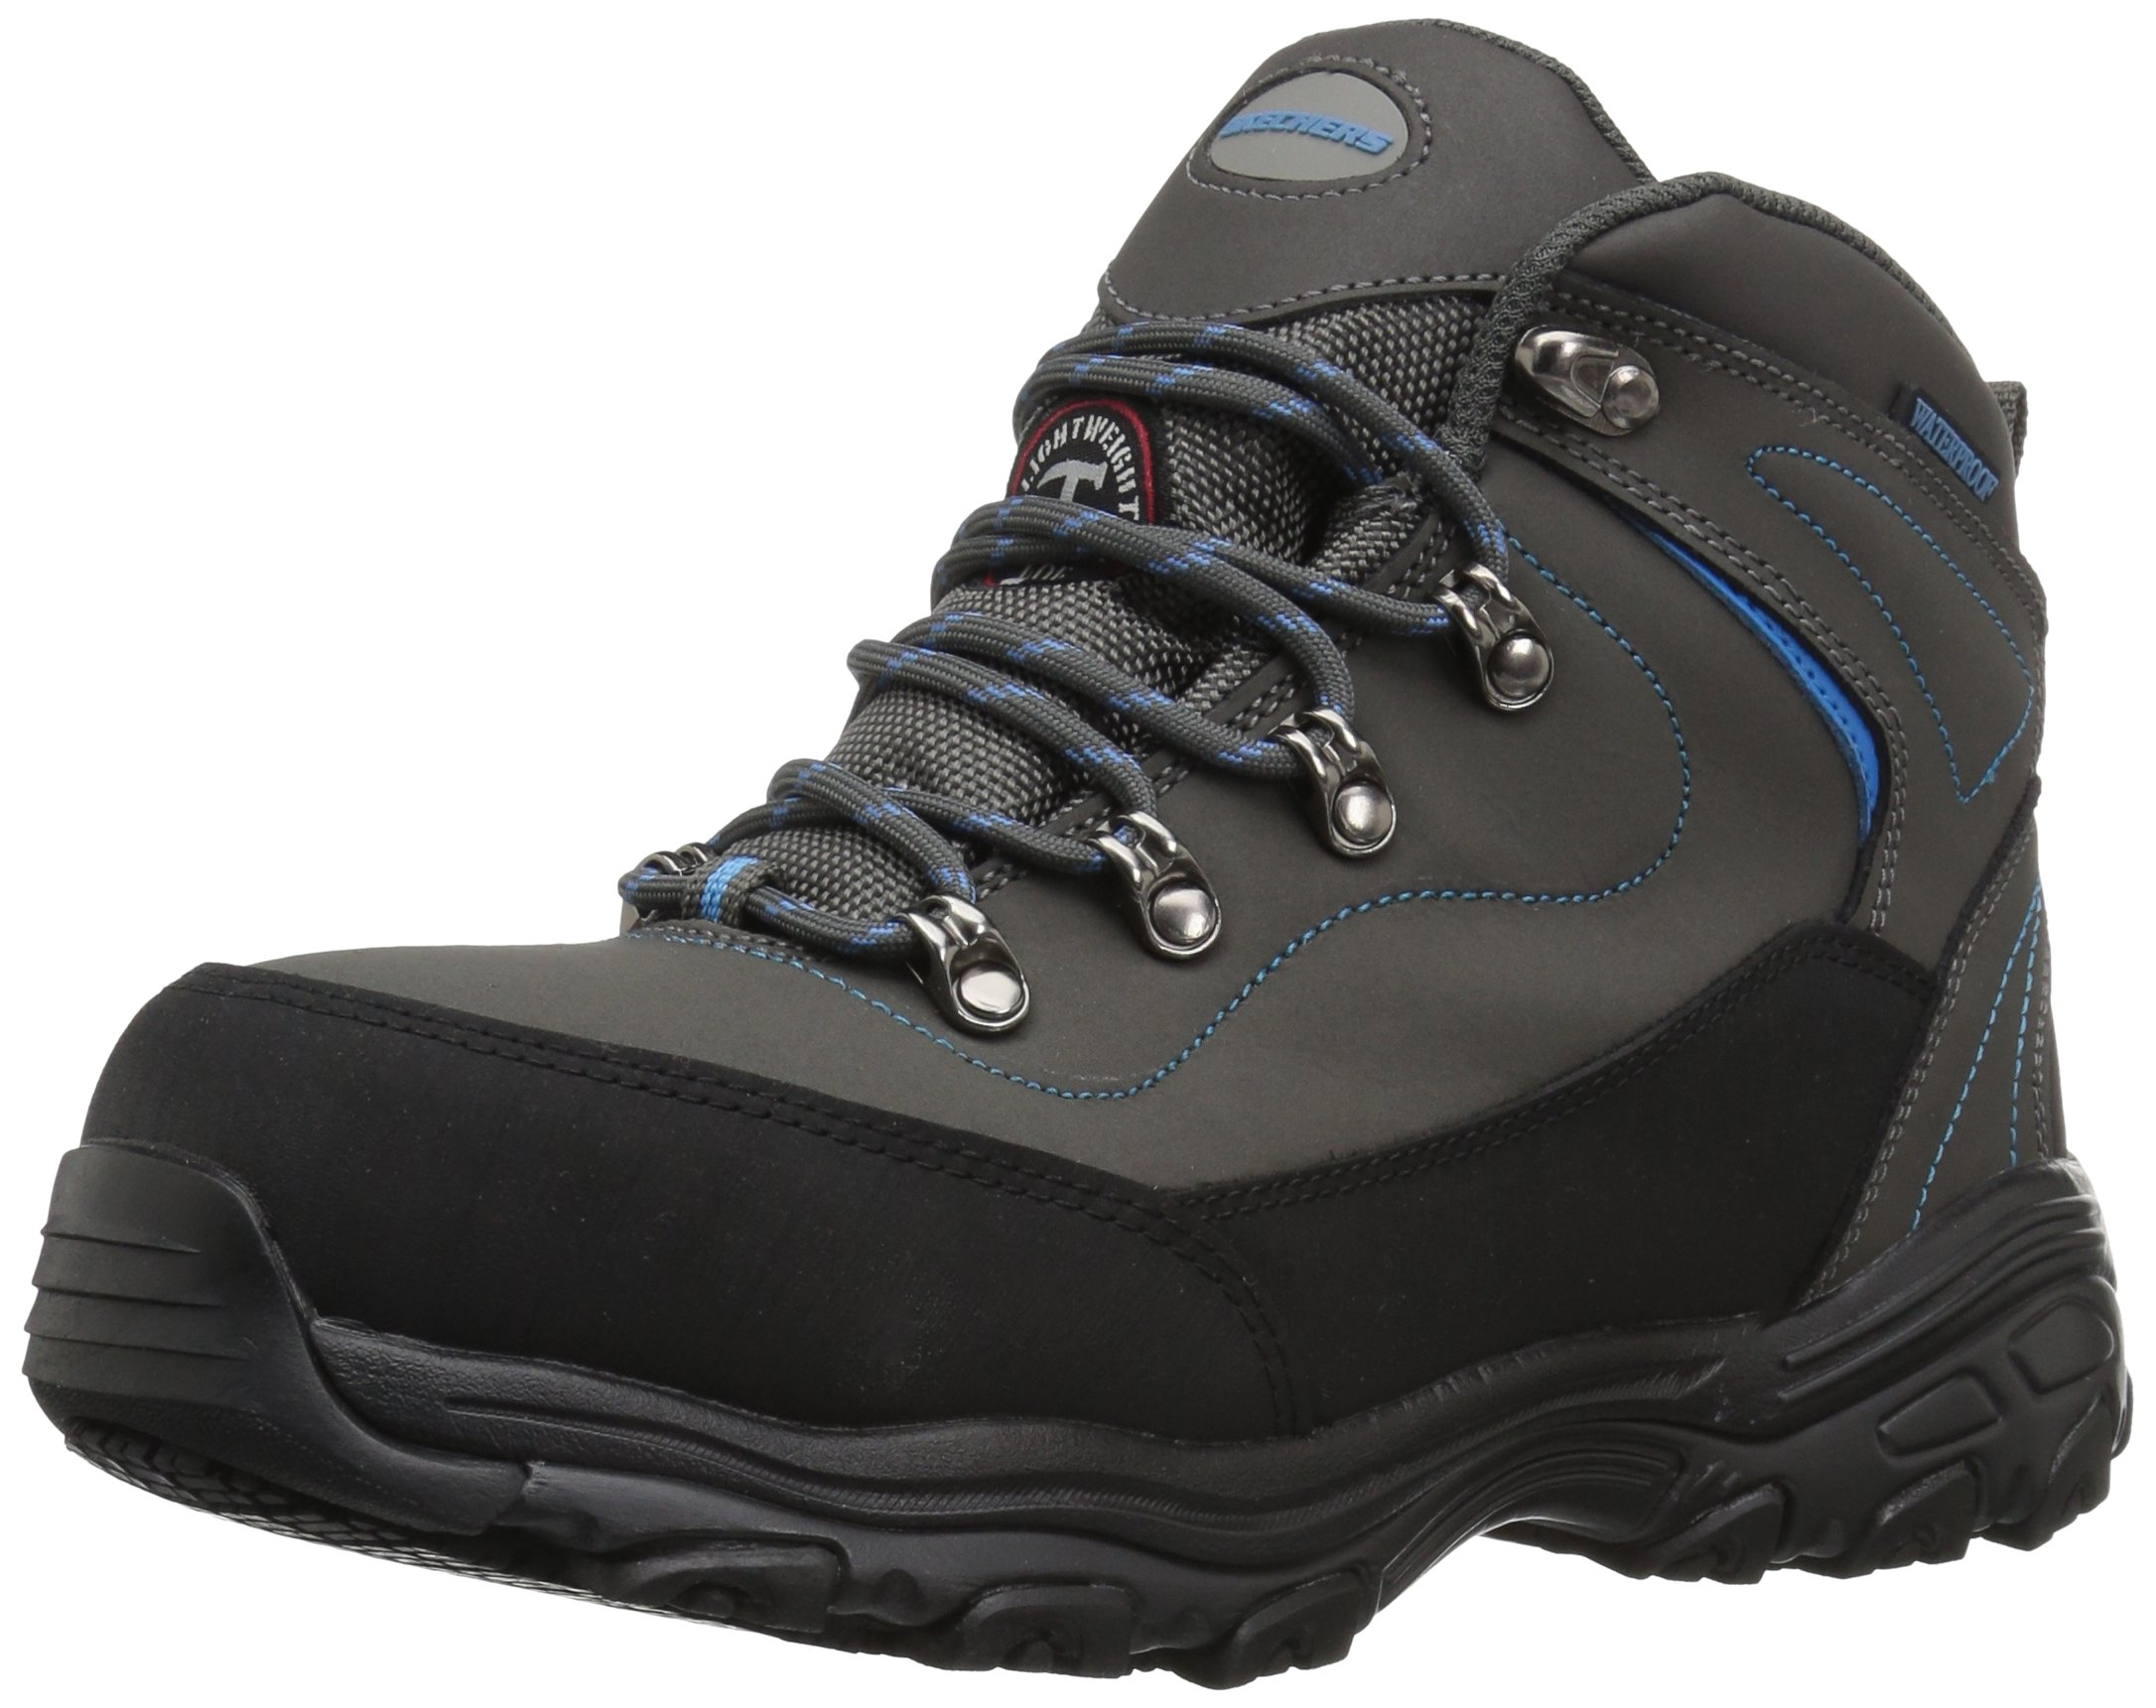 Skechers for Work Women's D Lite Amasa Work Boot, Gray Blue, 8 W US